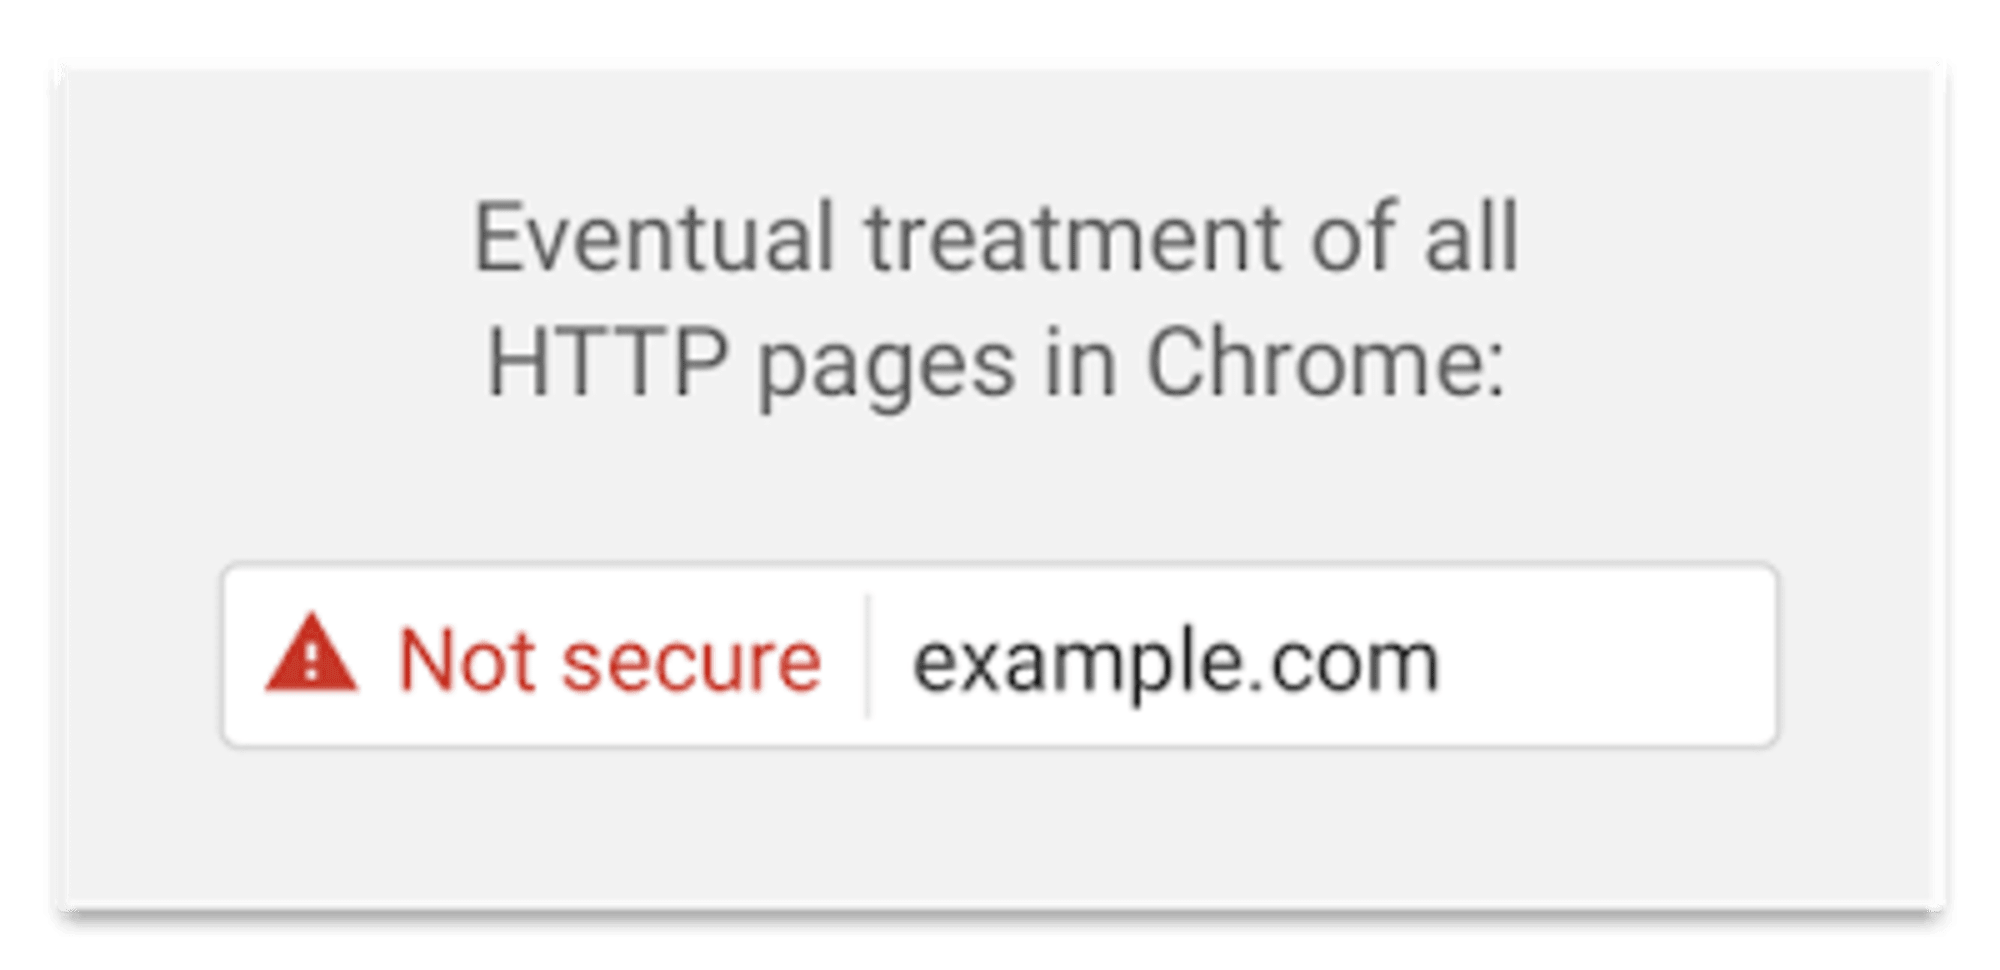 Eventually, Google plans to label all HTTP pages as non-secure, and change the HTTP security indicator to the red triangle that Chrome uses for broken HTTPS